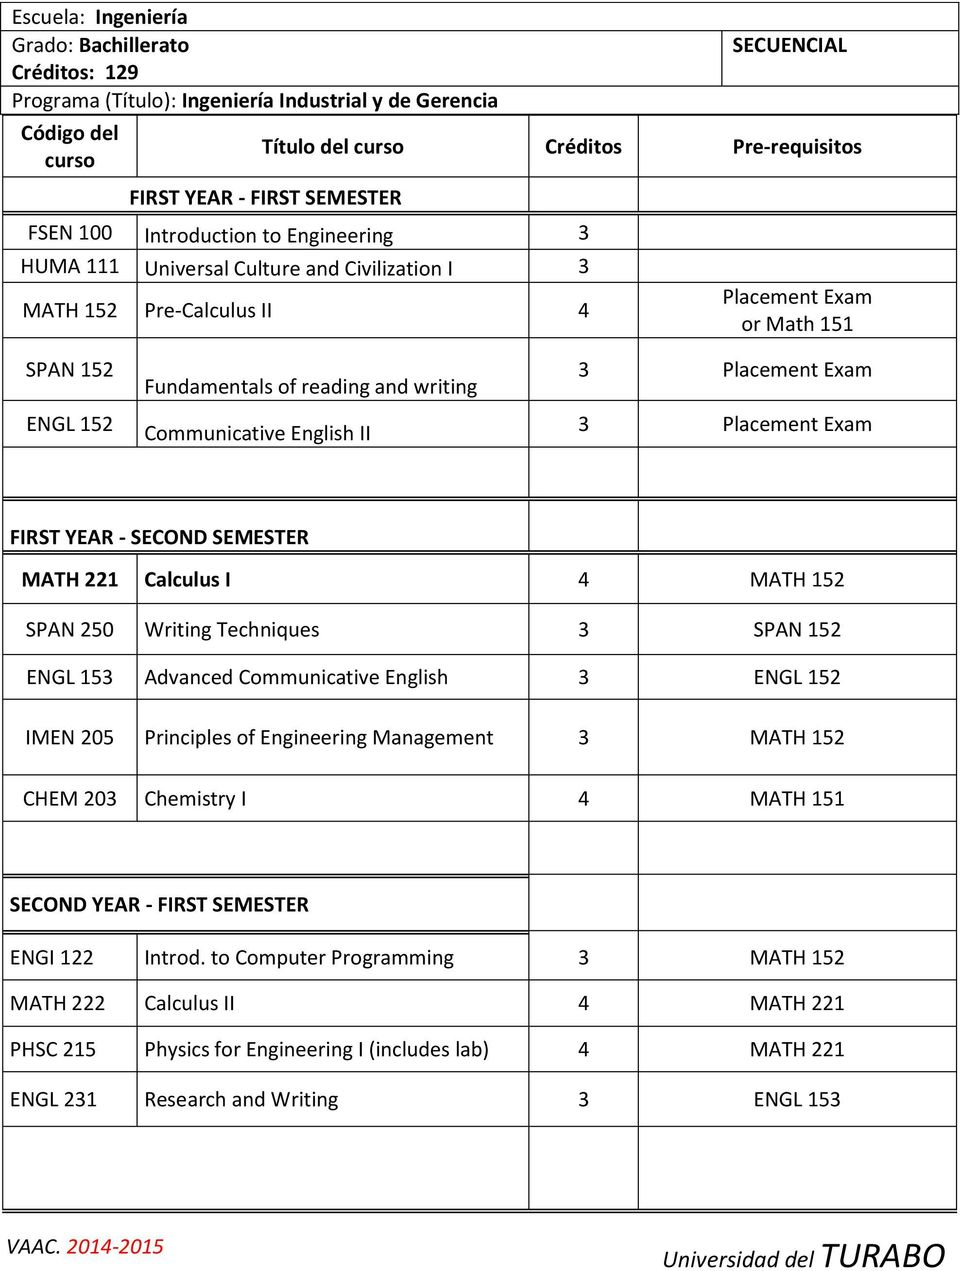 Placement Exam Placement Exam FIRST YEAR - SECOND SEMESTER MATH 221 Calculus I 4 MATH 152 SPAN 250 Writing Techniques SPAN 152 ENGL 15 Advanced Communicative English ENGL 152 IMEN 205 Principles of